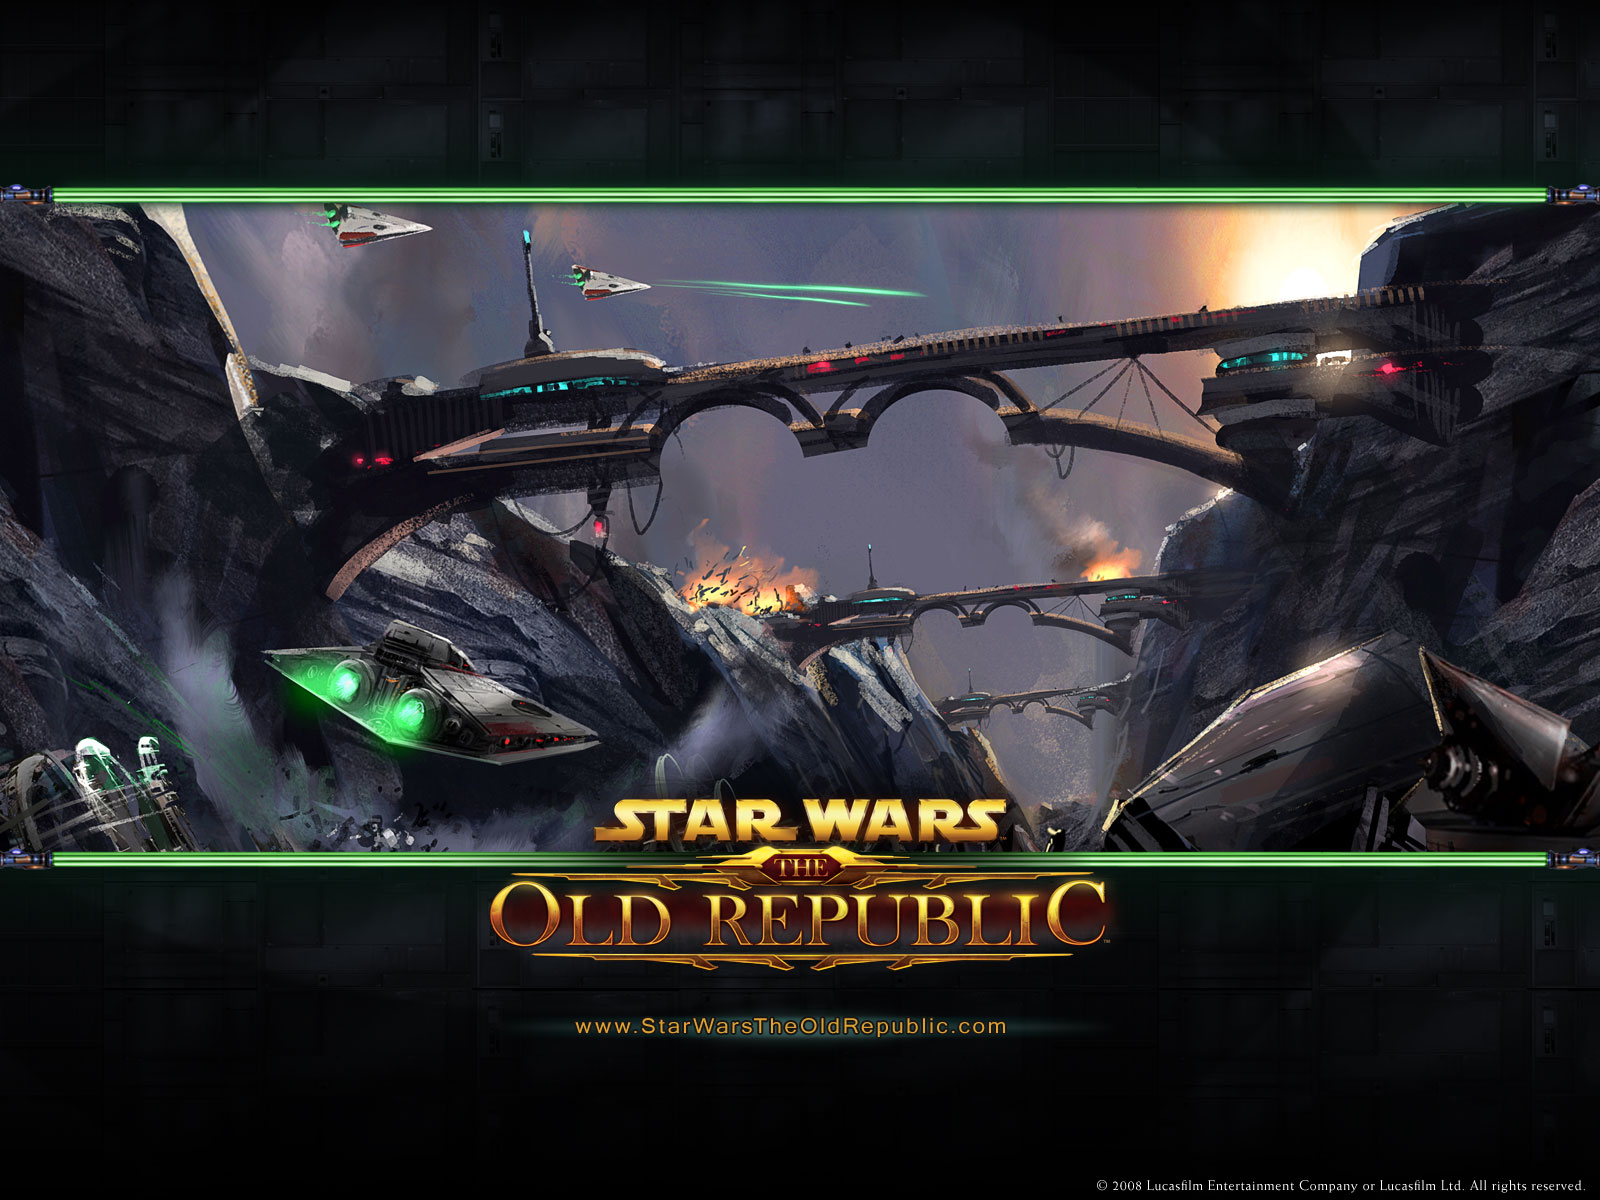 Star Wars Old Republic Wallpaper: High Resolution Wallpapers Pictures: Star Wars: The Old